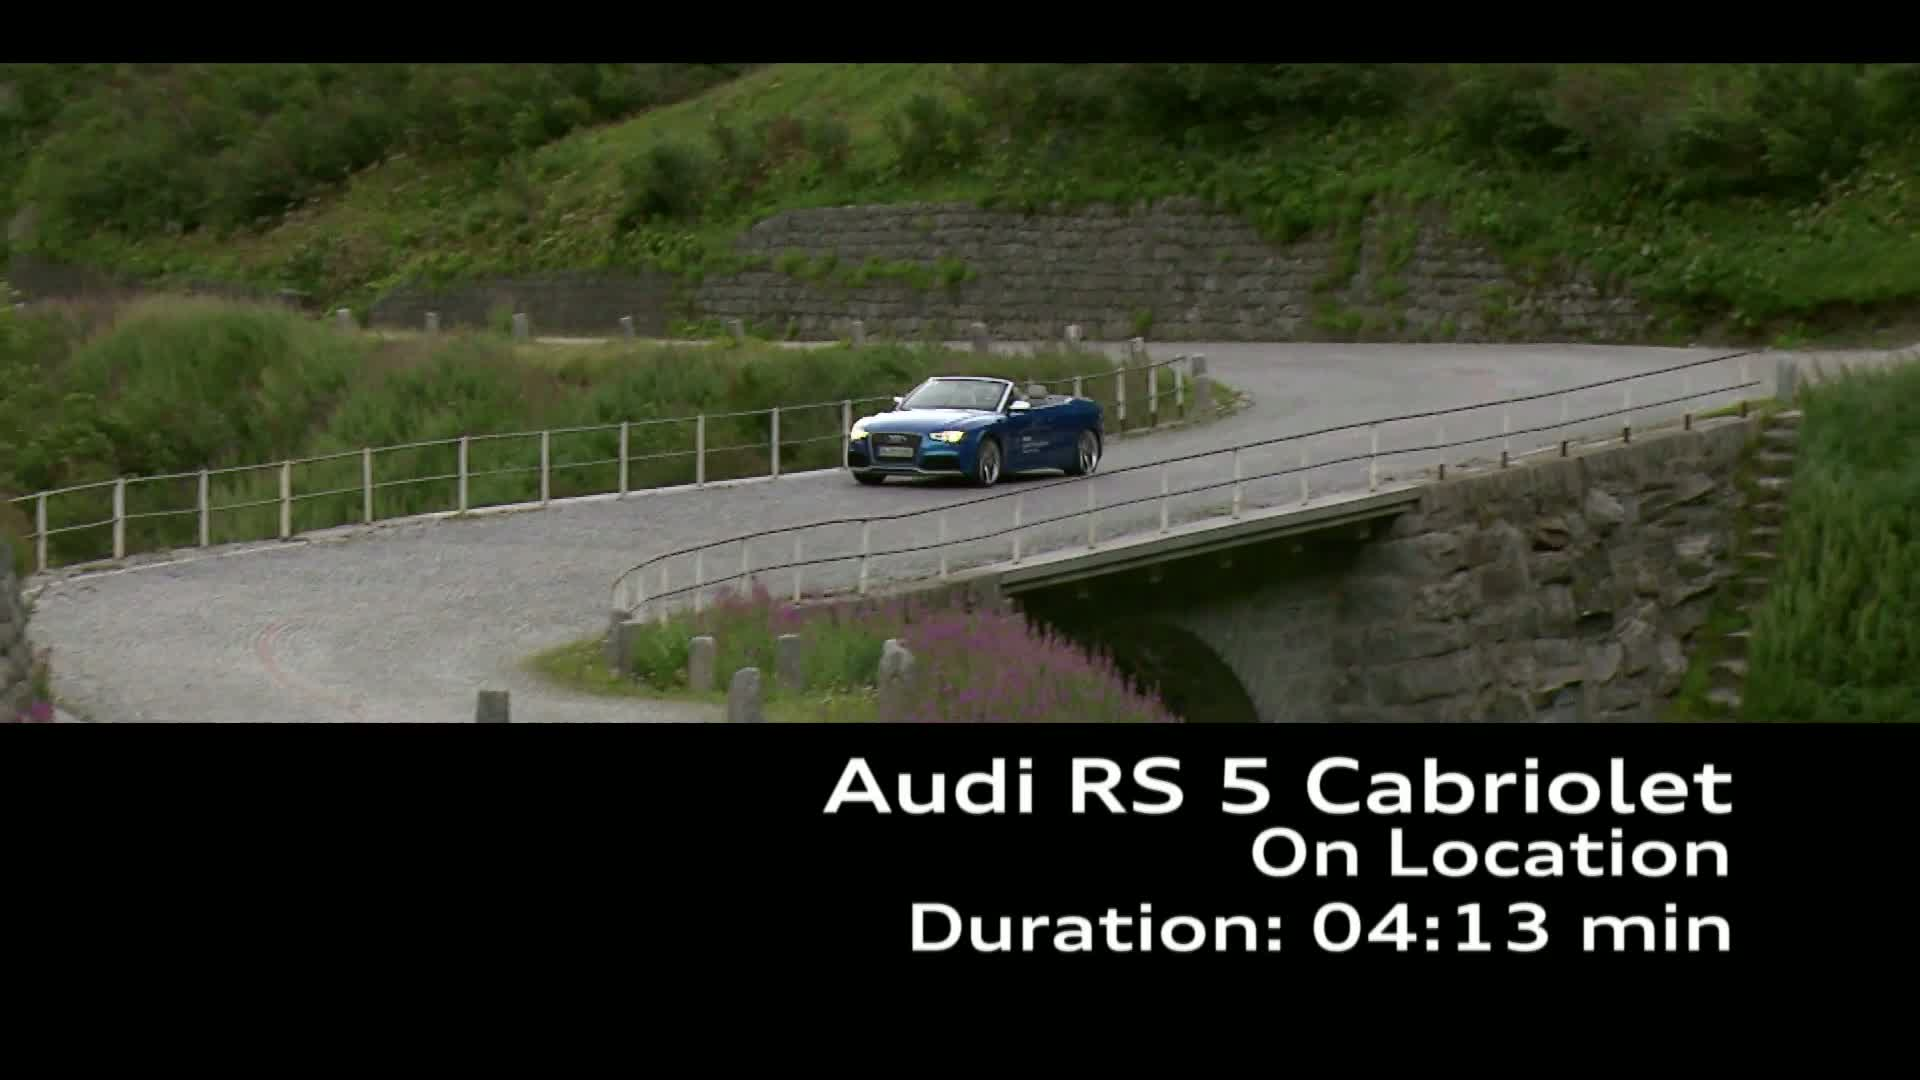 The Audi RS 5 Cabriolet Footage - Land of quattro Alpine Tour